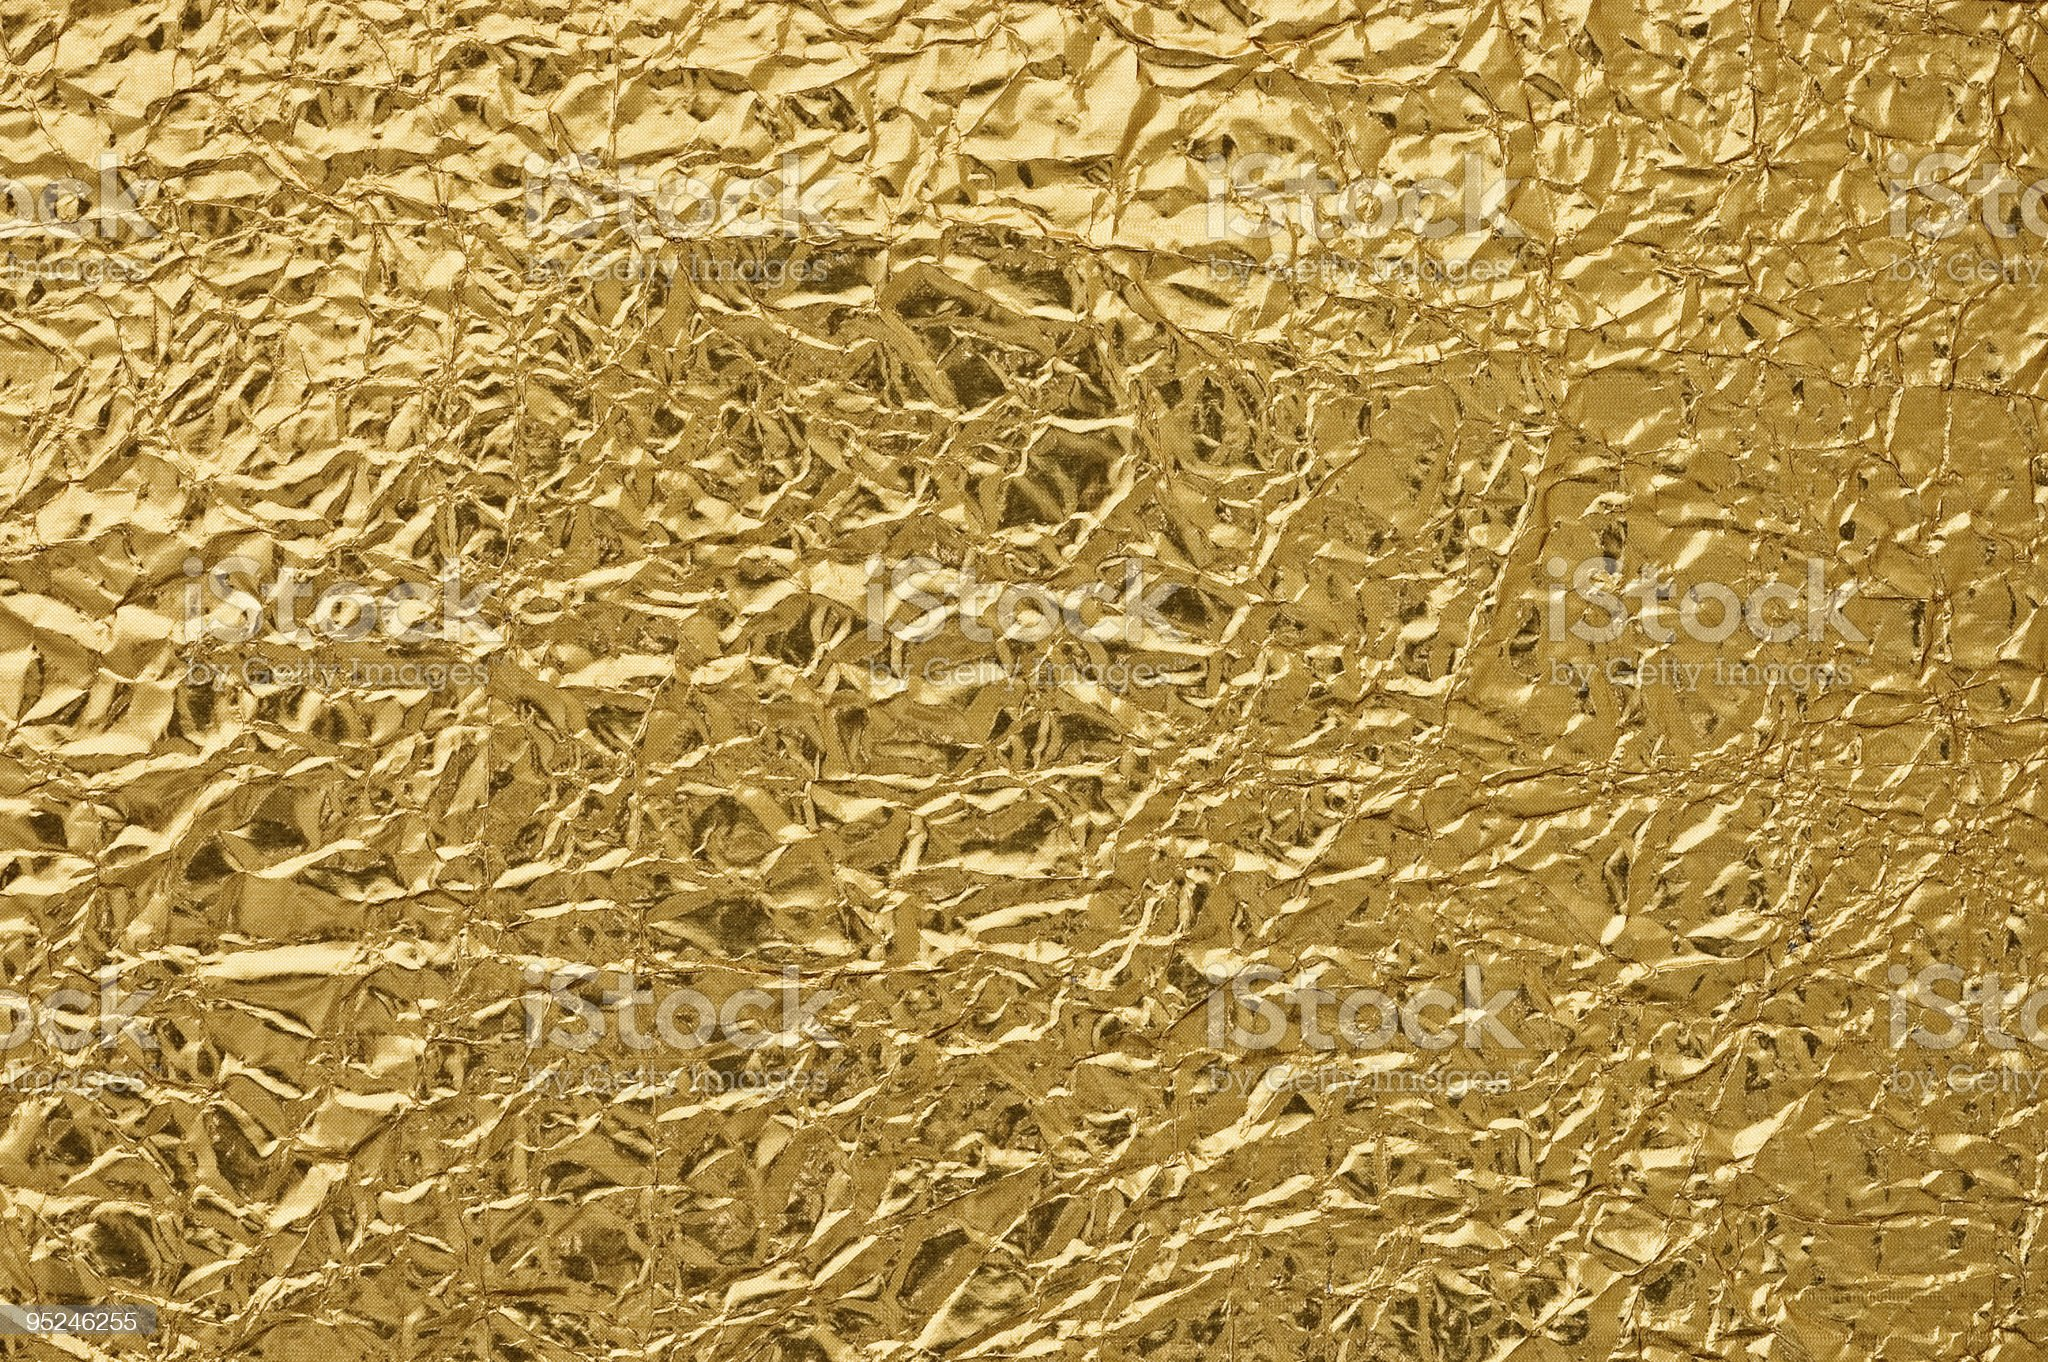 Metallic crumpled paper. royalty-free stock photo